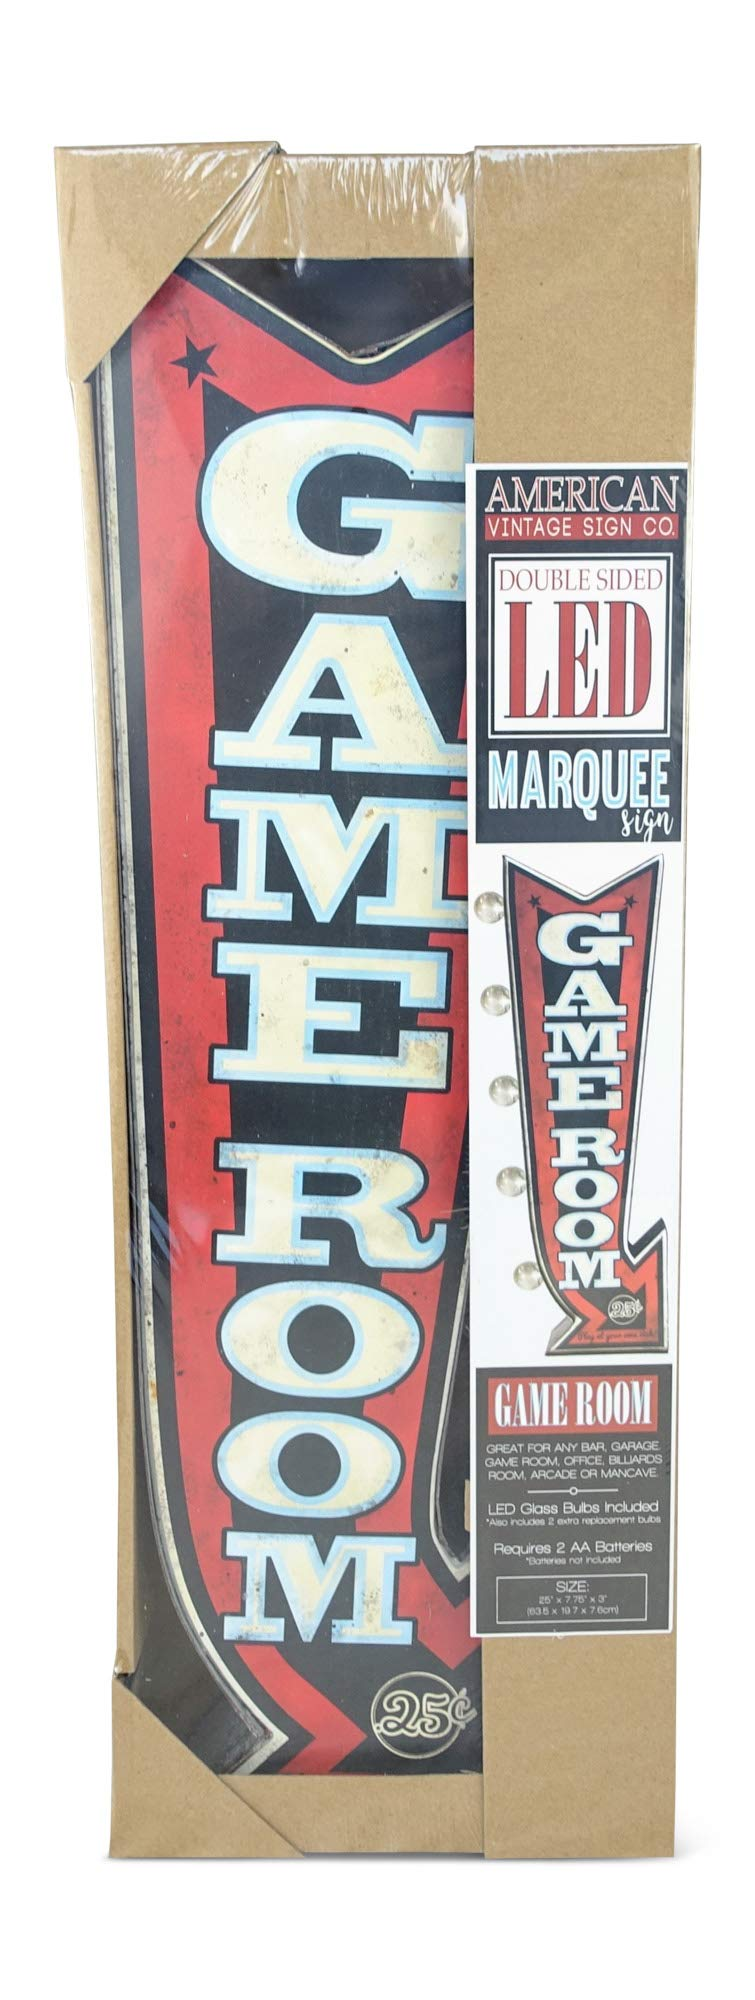 Game Room LED Sign, Large 25'' Double Sided Red Arrow Sign with Large Marquee Style LED Light Bulbs, Battery Operated Wall Decor with A Retro Distressed Design